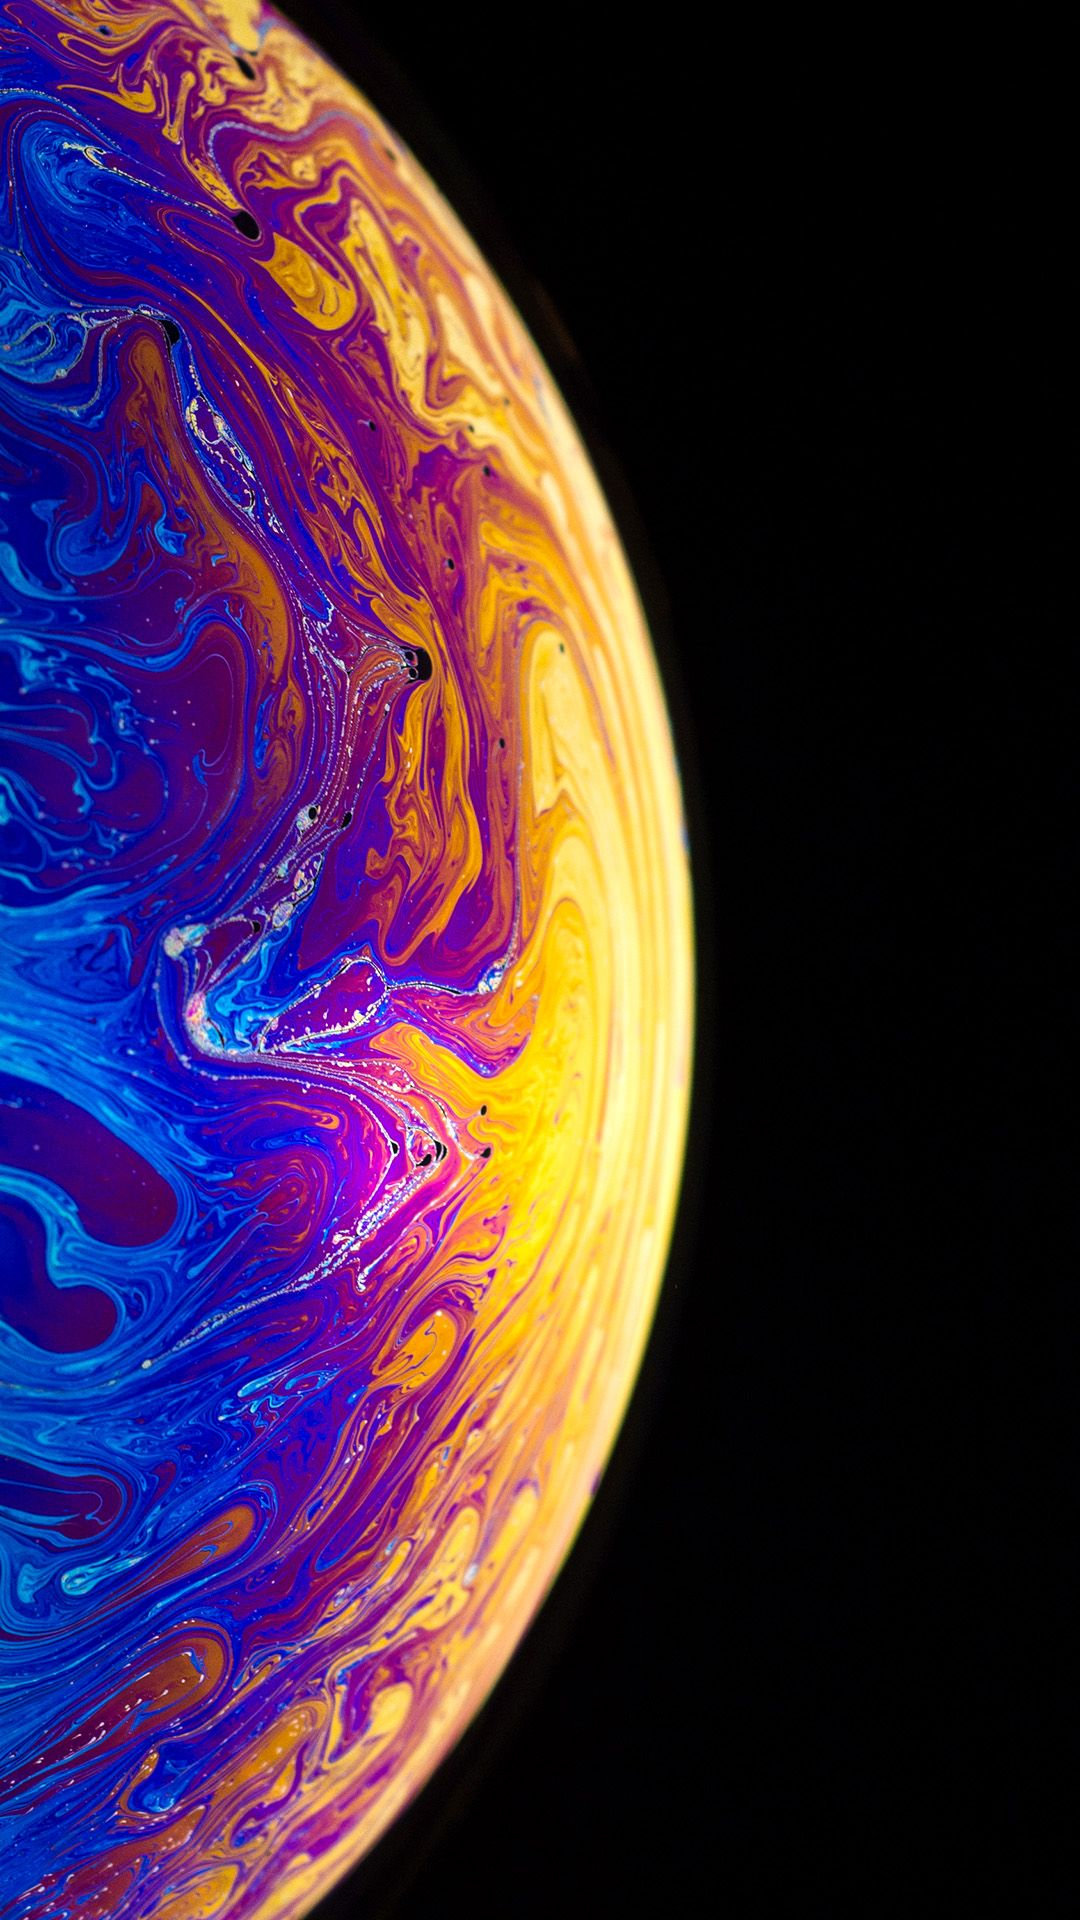 New Live Wallpapers for iPhone Xs!  iPhone XS Wallpaper in 2019  Apple wallpaper iphone